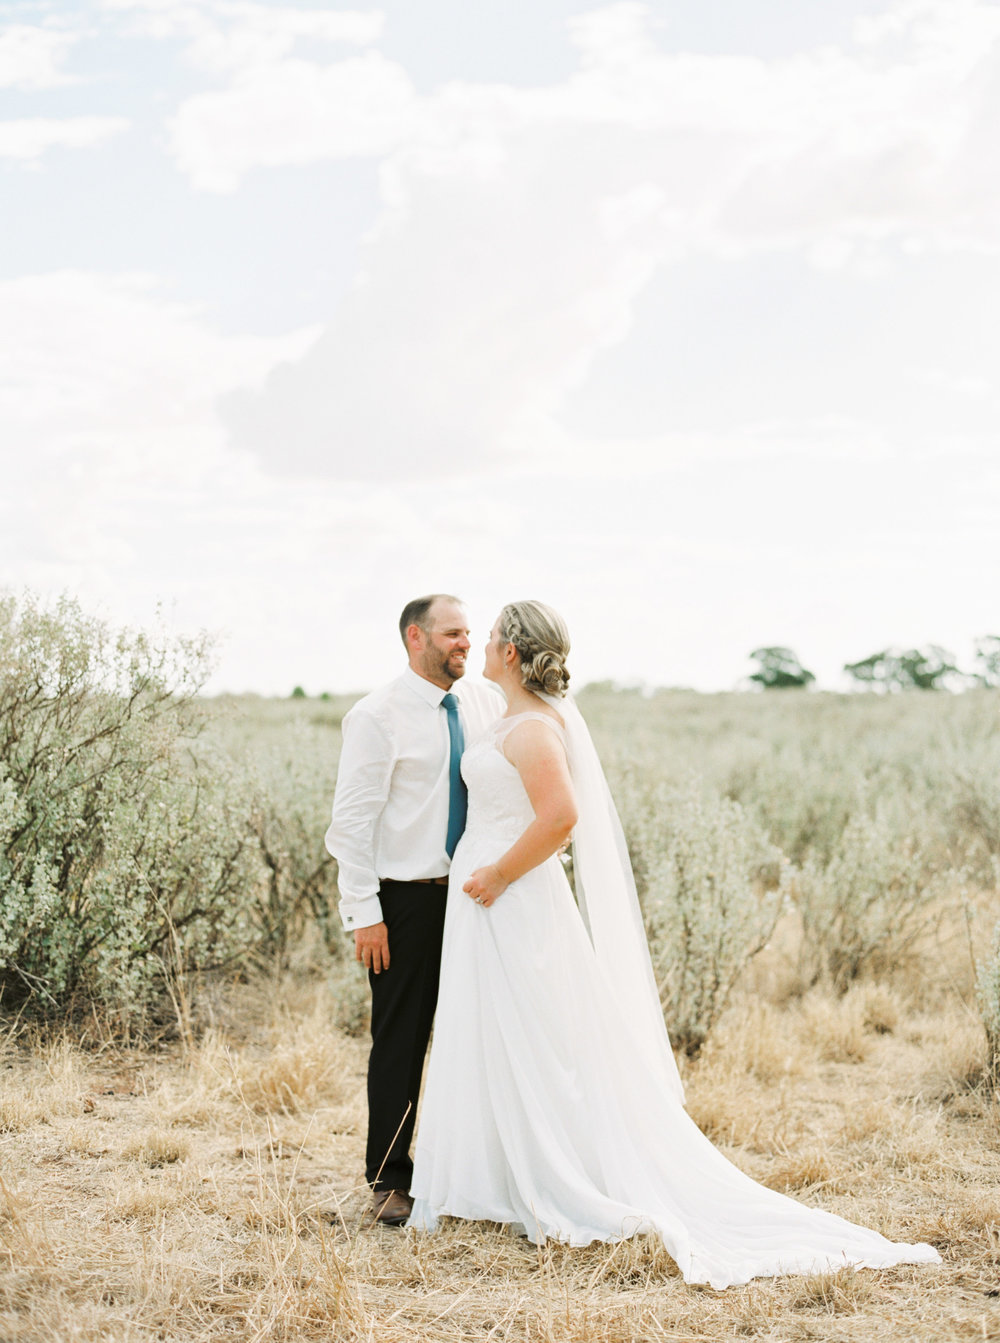 00044- Fine Art Film NSW Mudgee Wedding Photographer Sheri McMahon.jpg